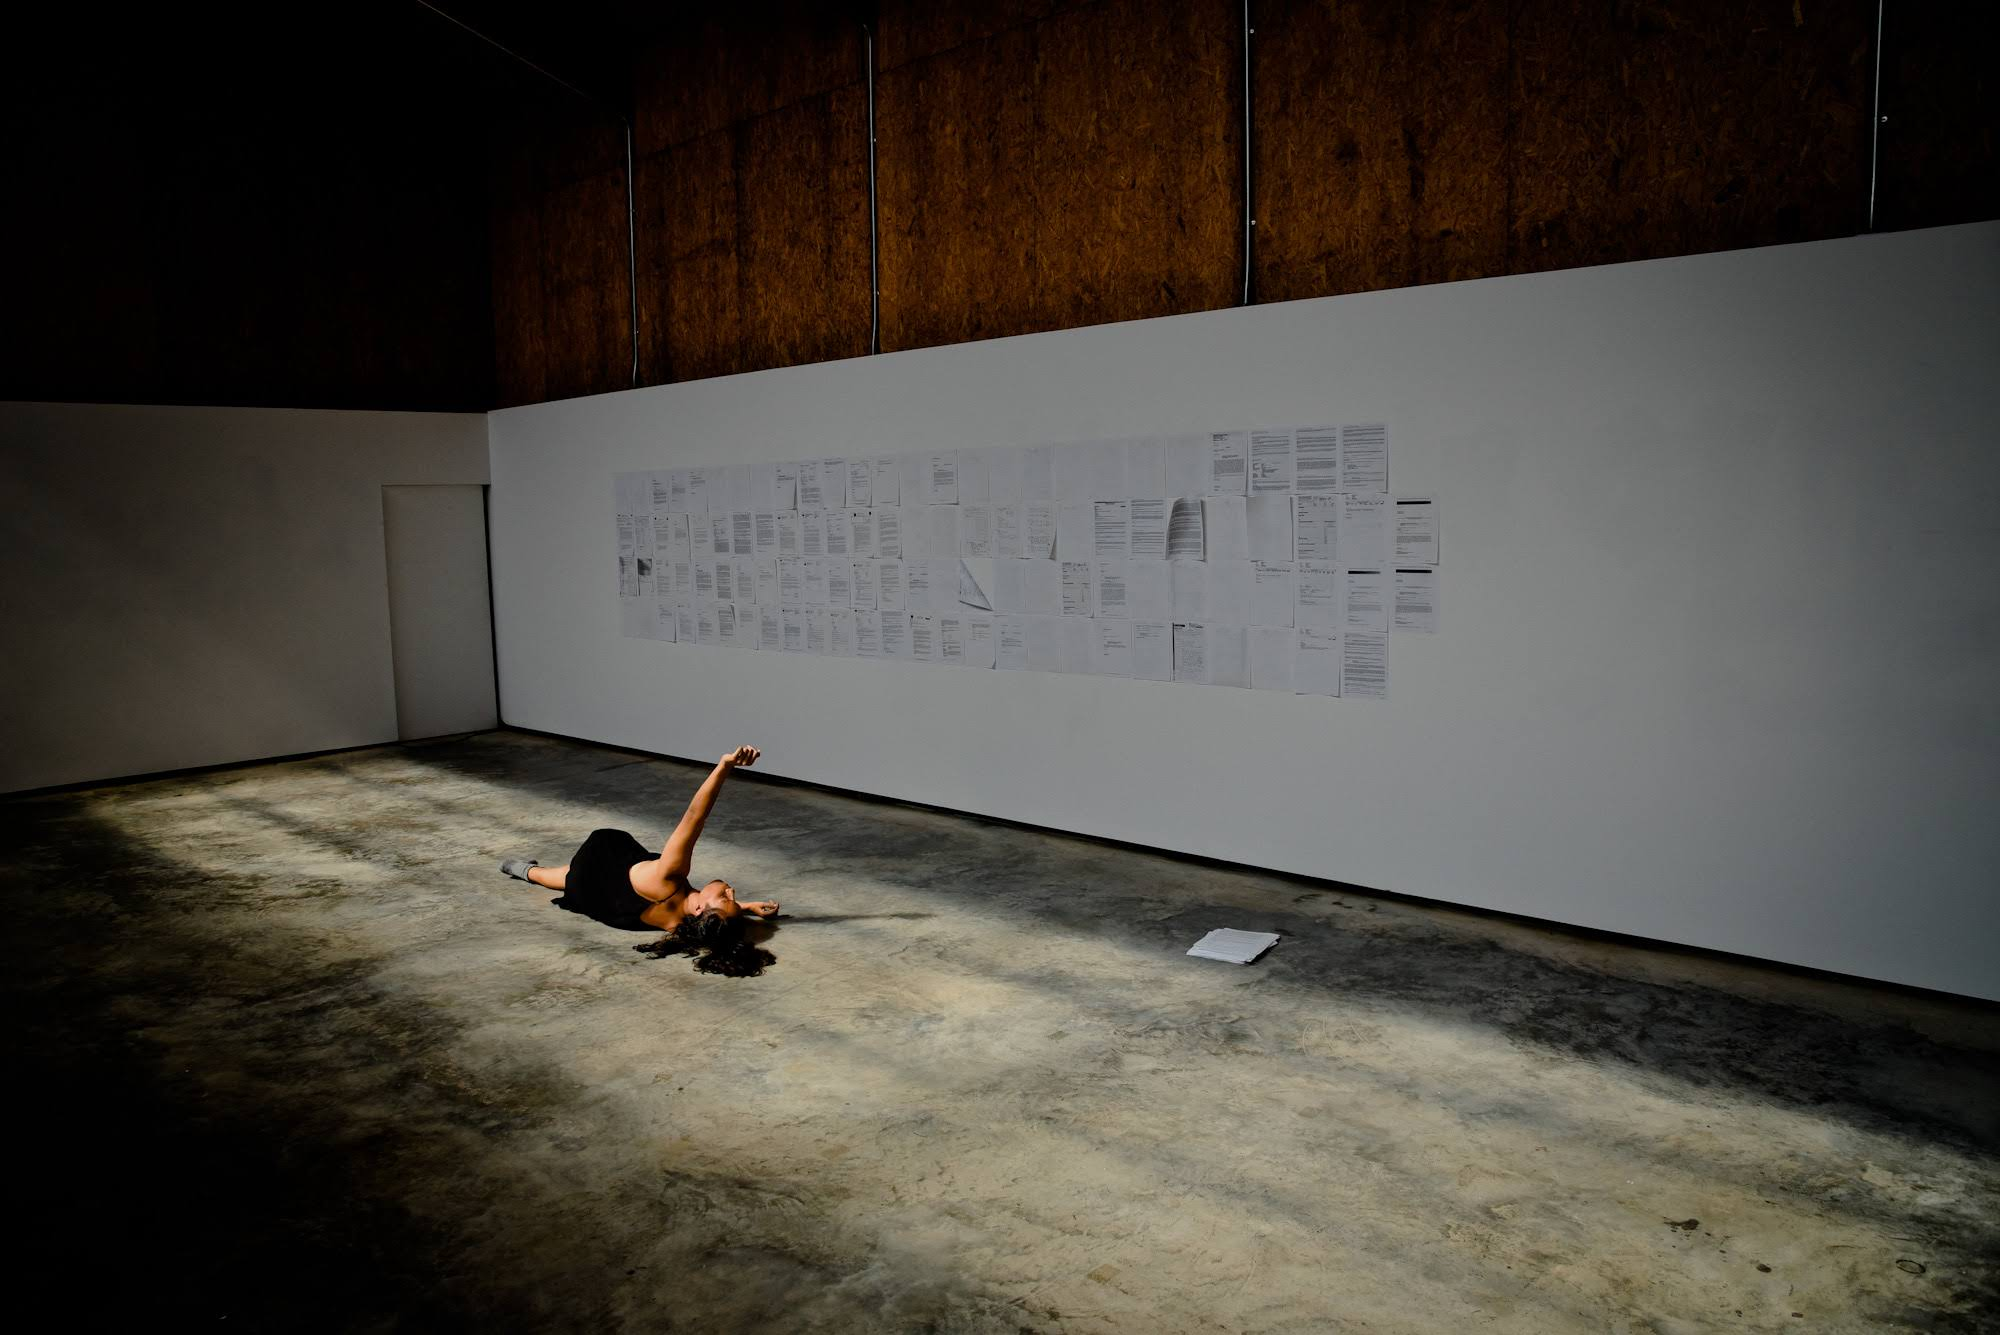 Image from July 2018, Denniston Hill. Pelenakeke is lying on the floor, on her side, arm outstretched above her, dancing in front of an installation of her medical record. Photo credit: Vladimir Radojicic